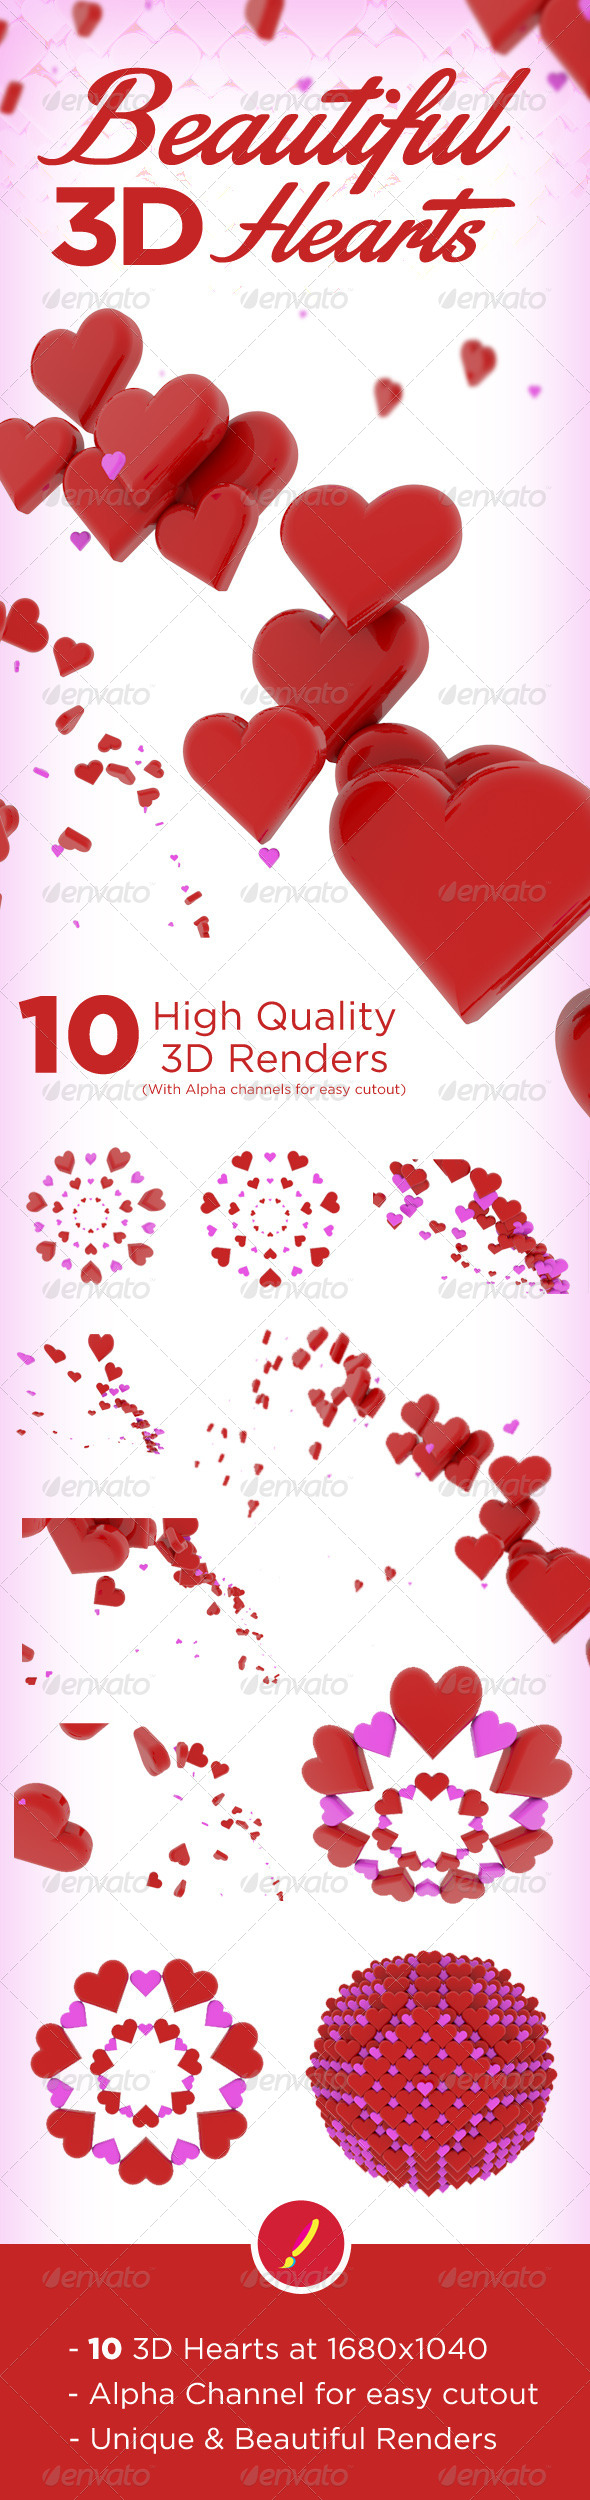 10 Beautiful 3D Hearts